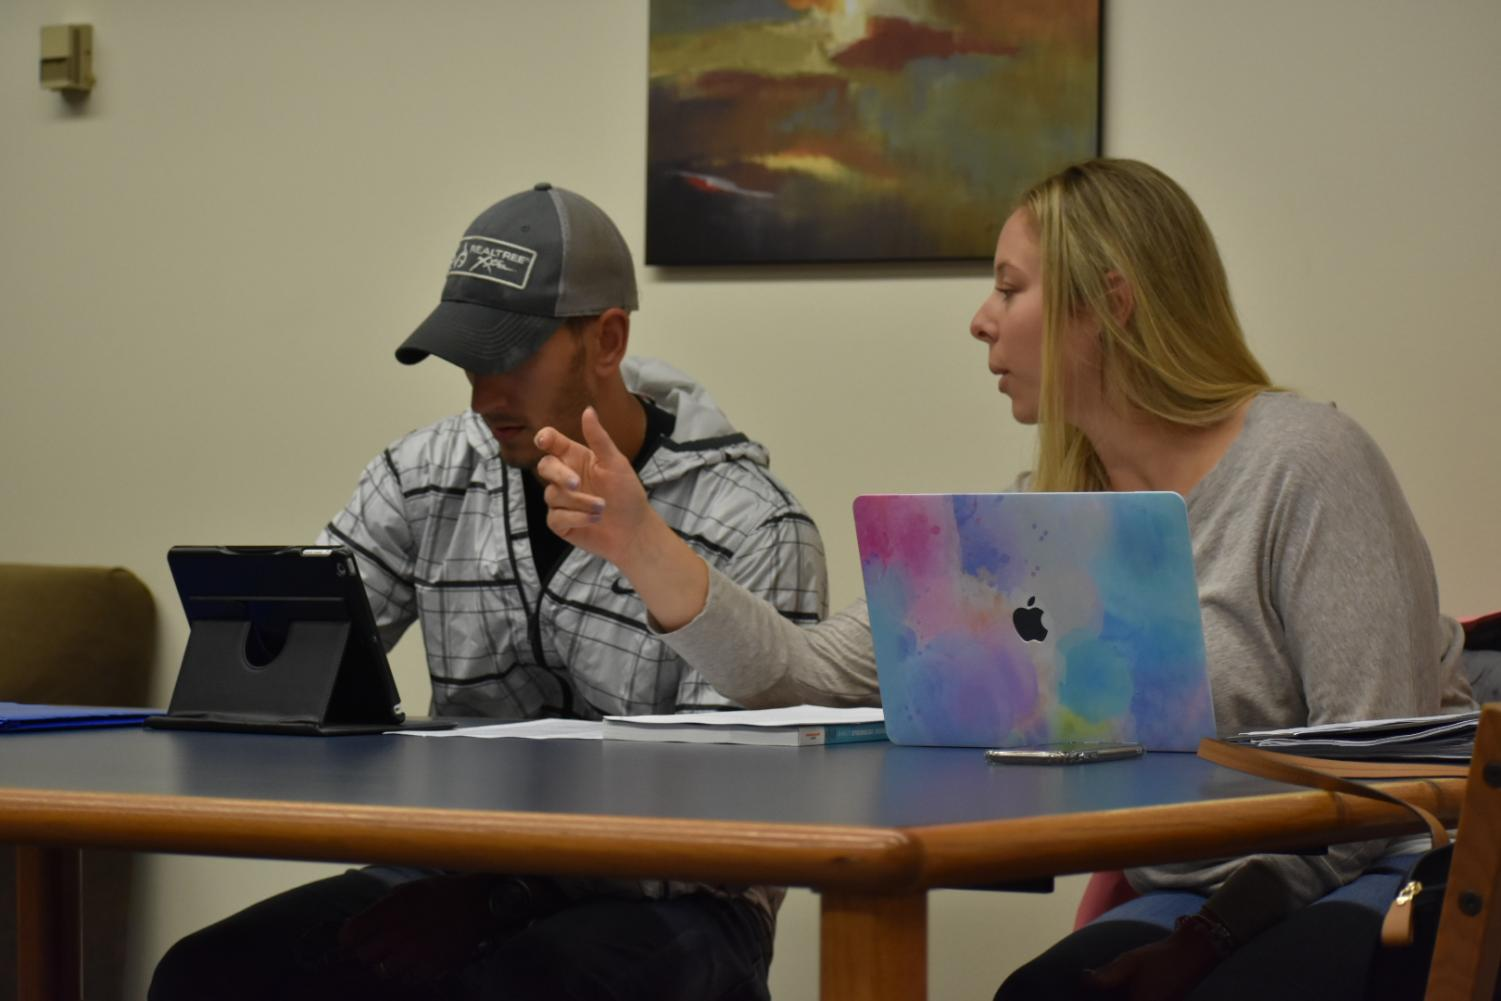 Kristina Szabo and John Pilla utilize their apple products to complete work in Reeves library.